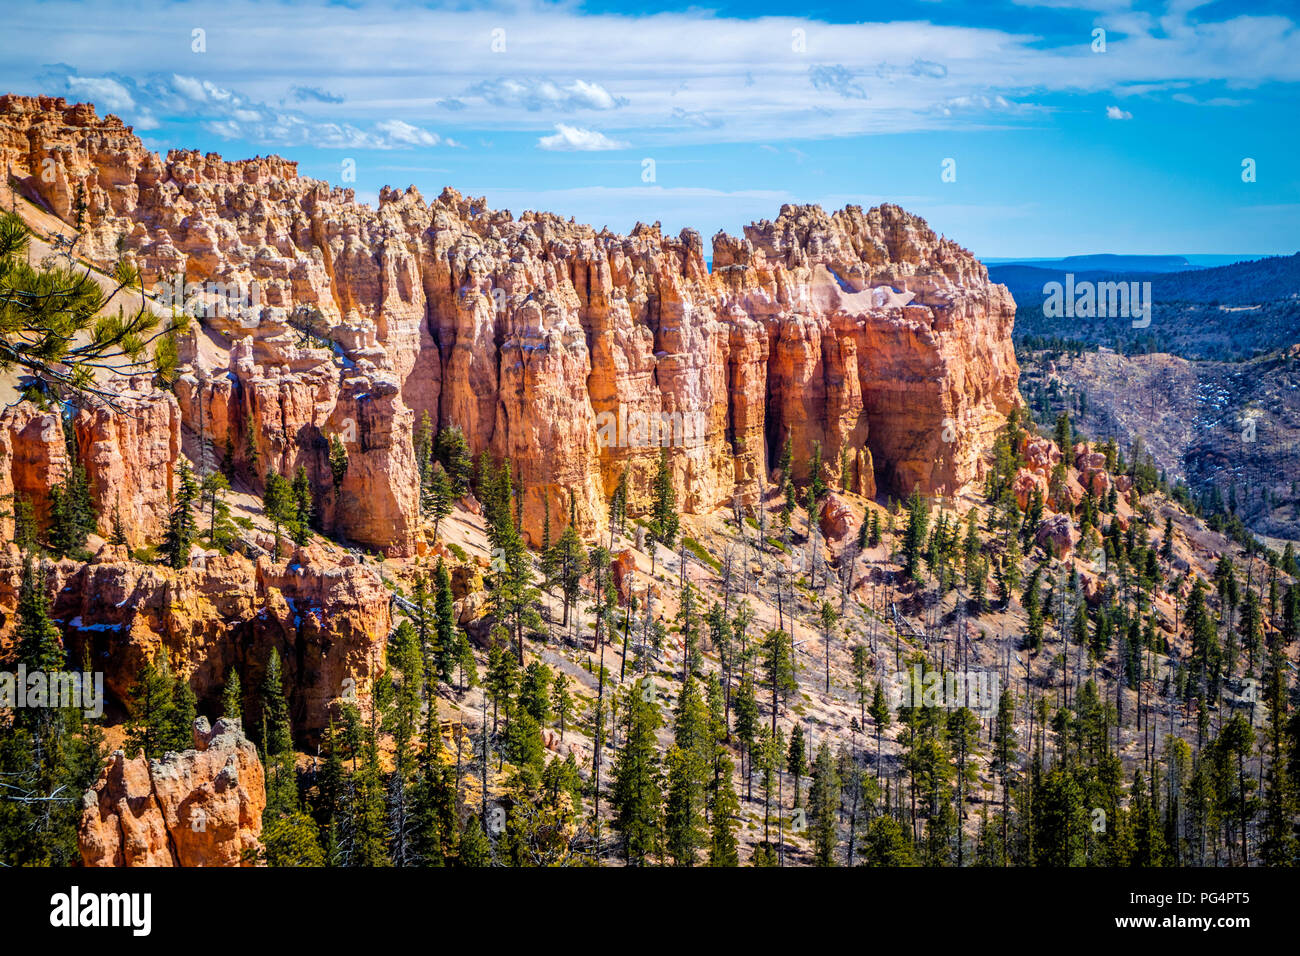 Natural rock formation of the famous site of Bryce Canyon National Park - Stock Image